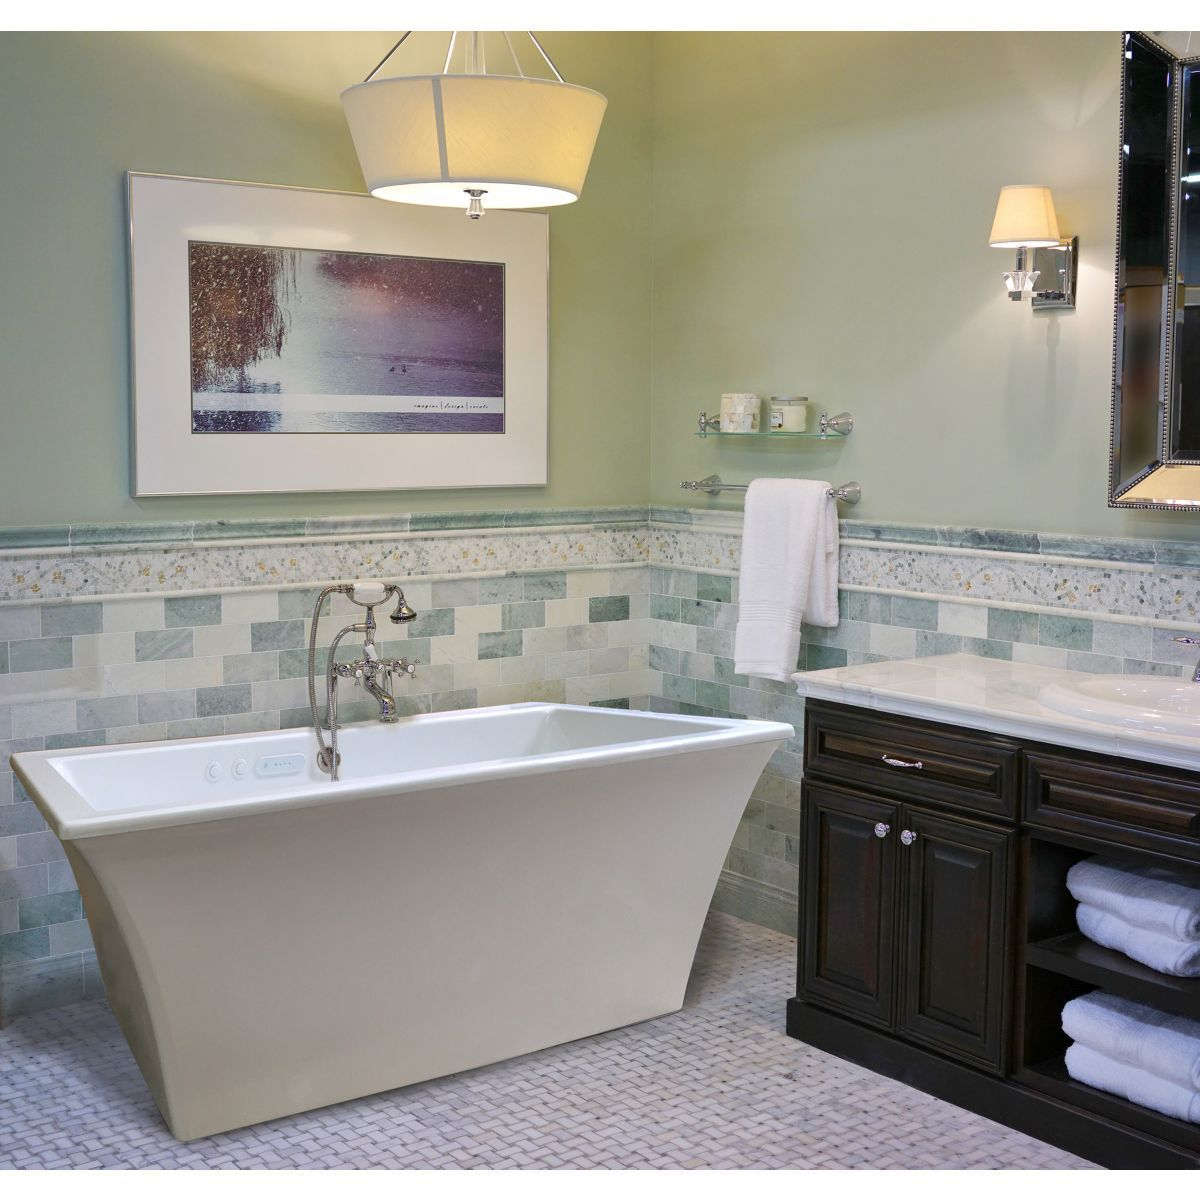 Reward Freestanding Whirlpool & Air Bath Tub | Whirlpool Bathtub ...